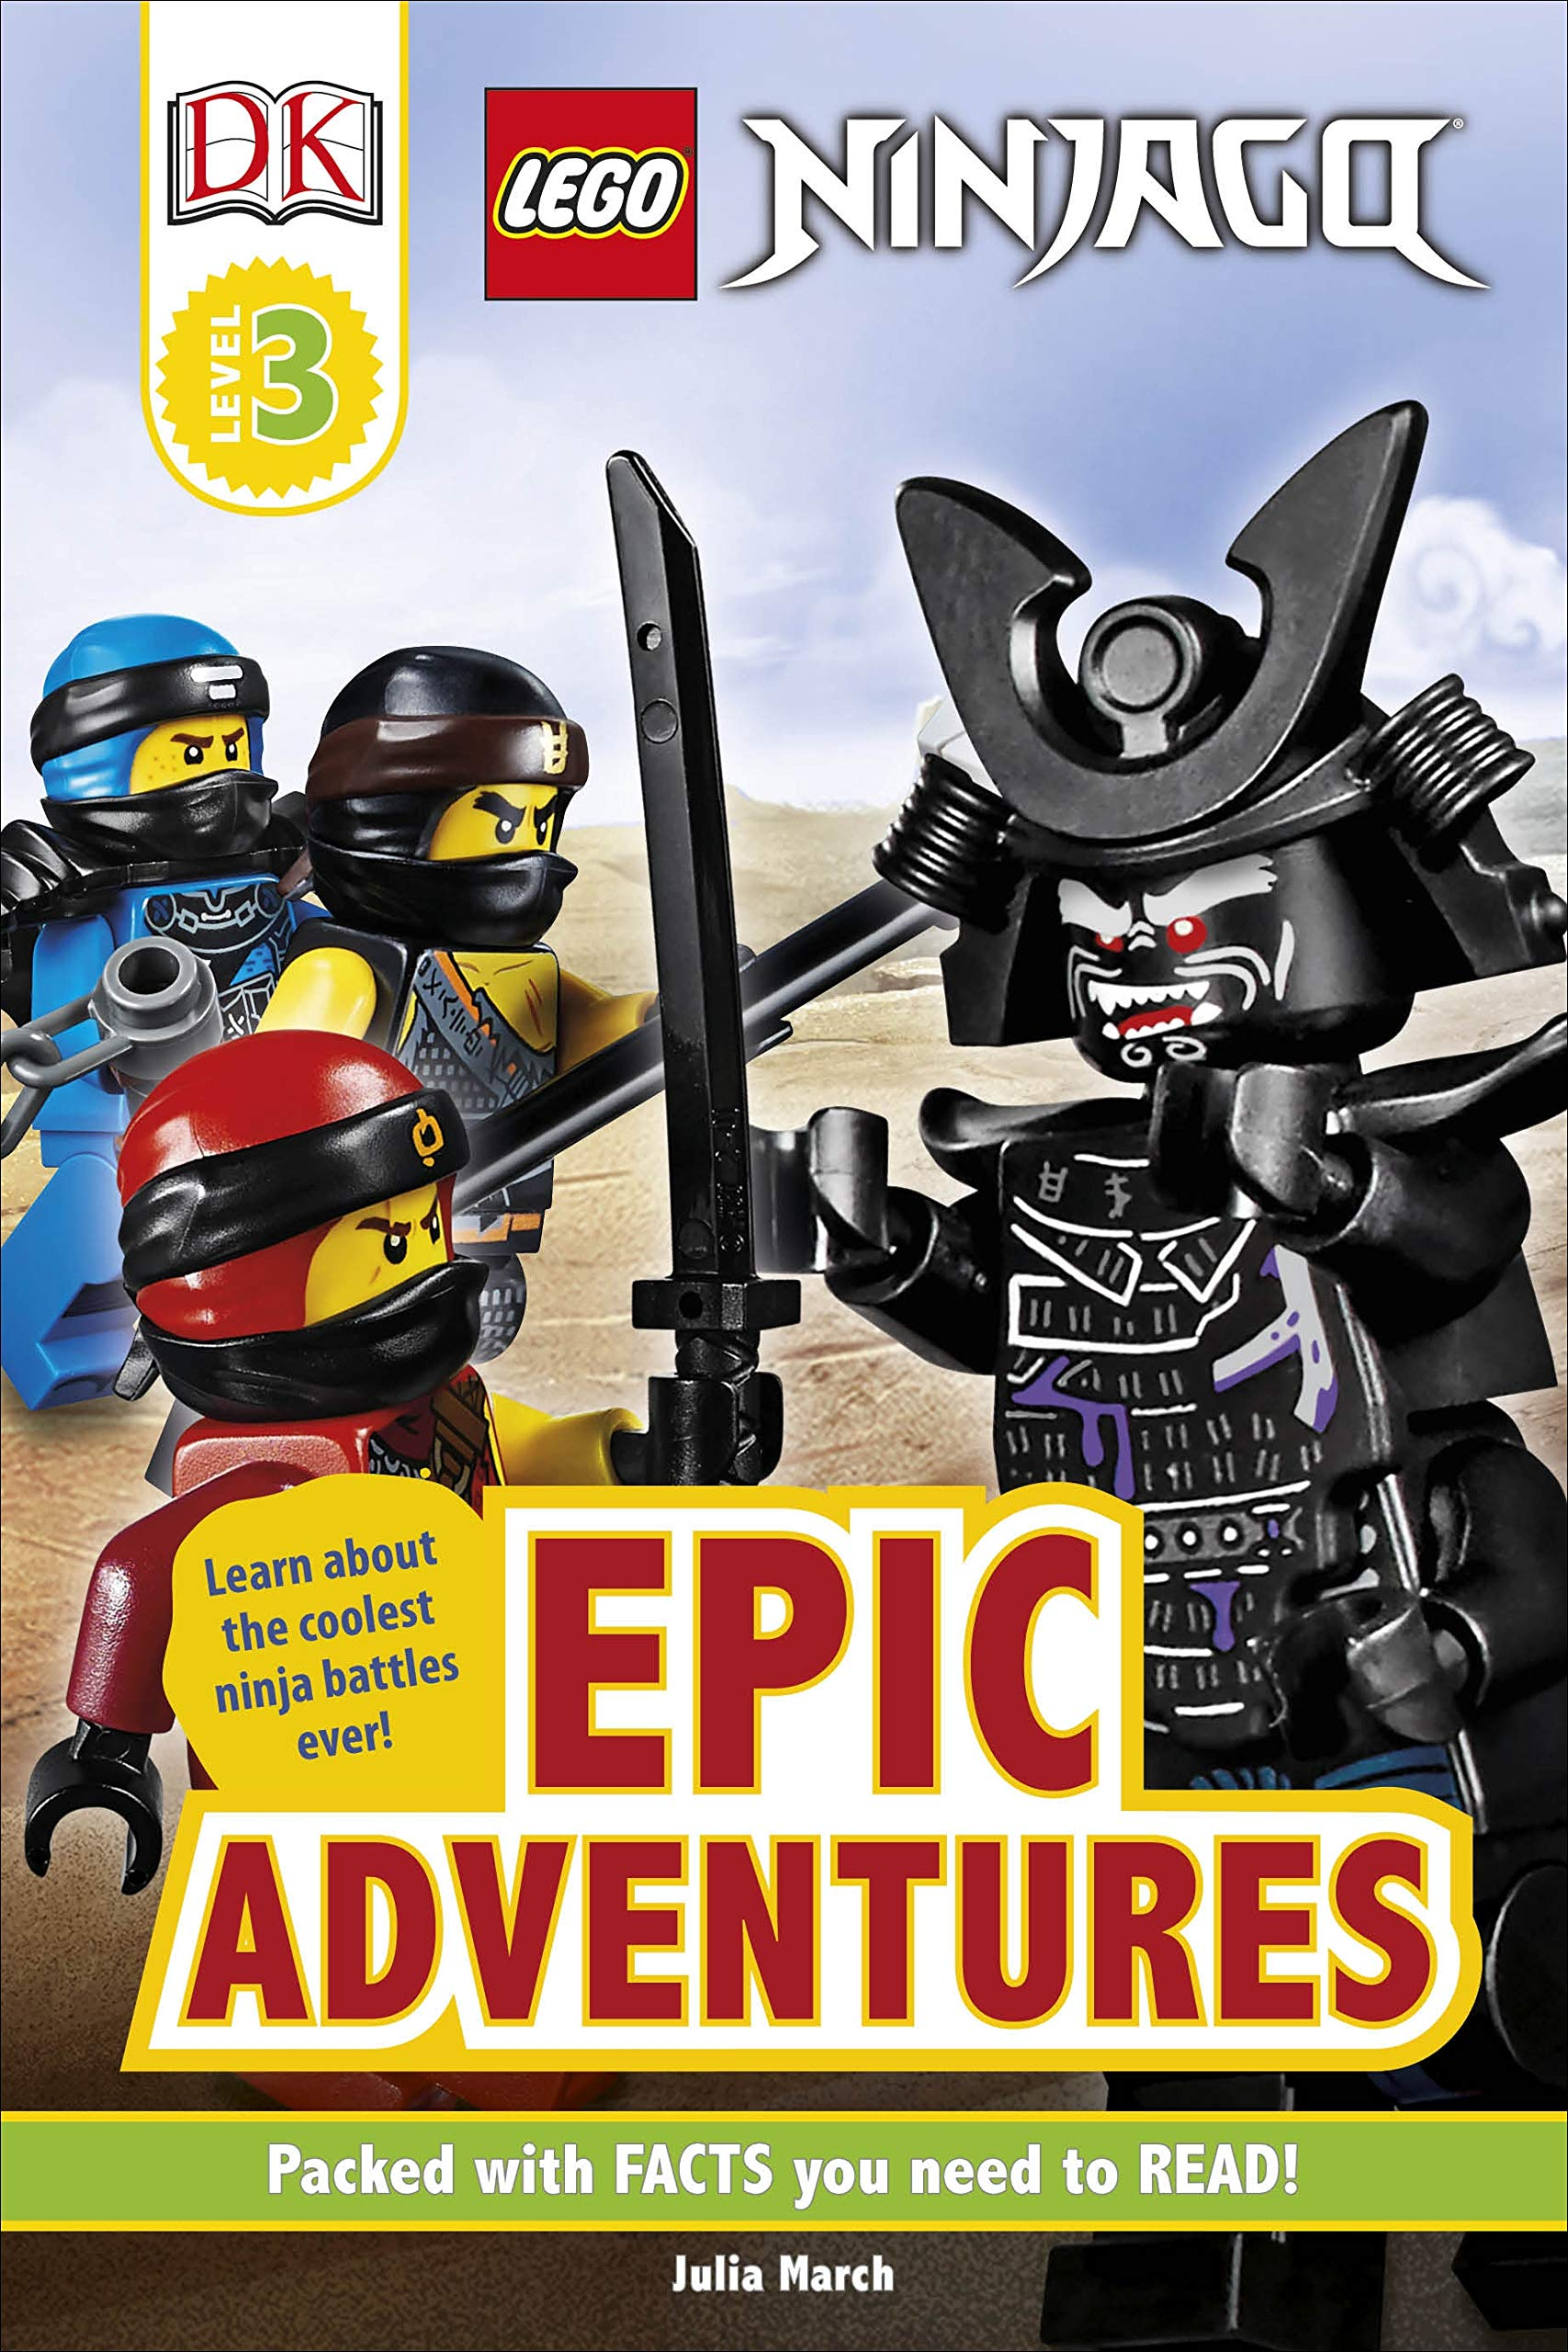 Amazon.com: LEGO NINJAGO Epic Adventures (9780241375976 ...